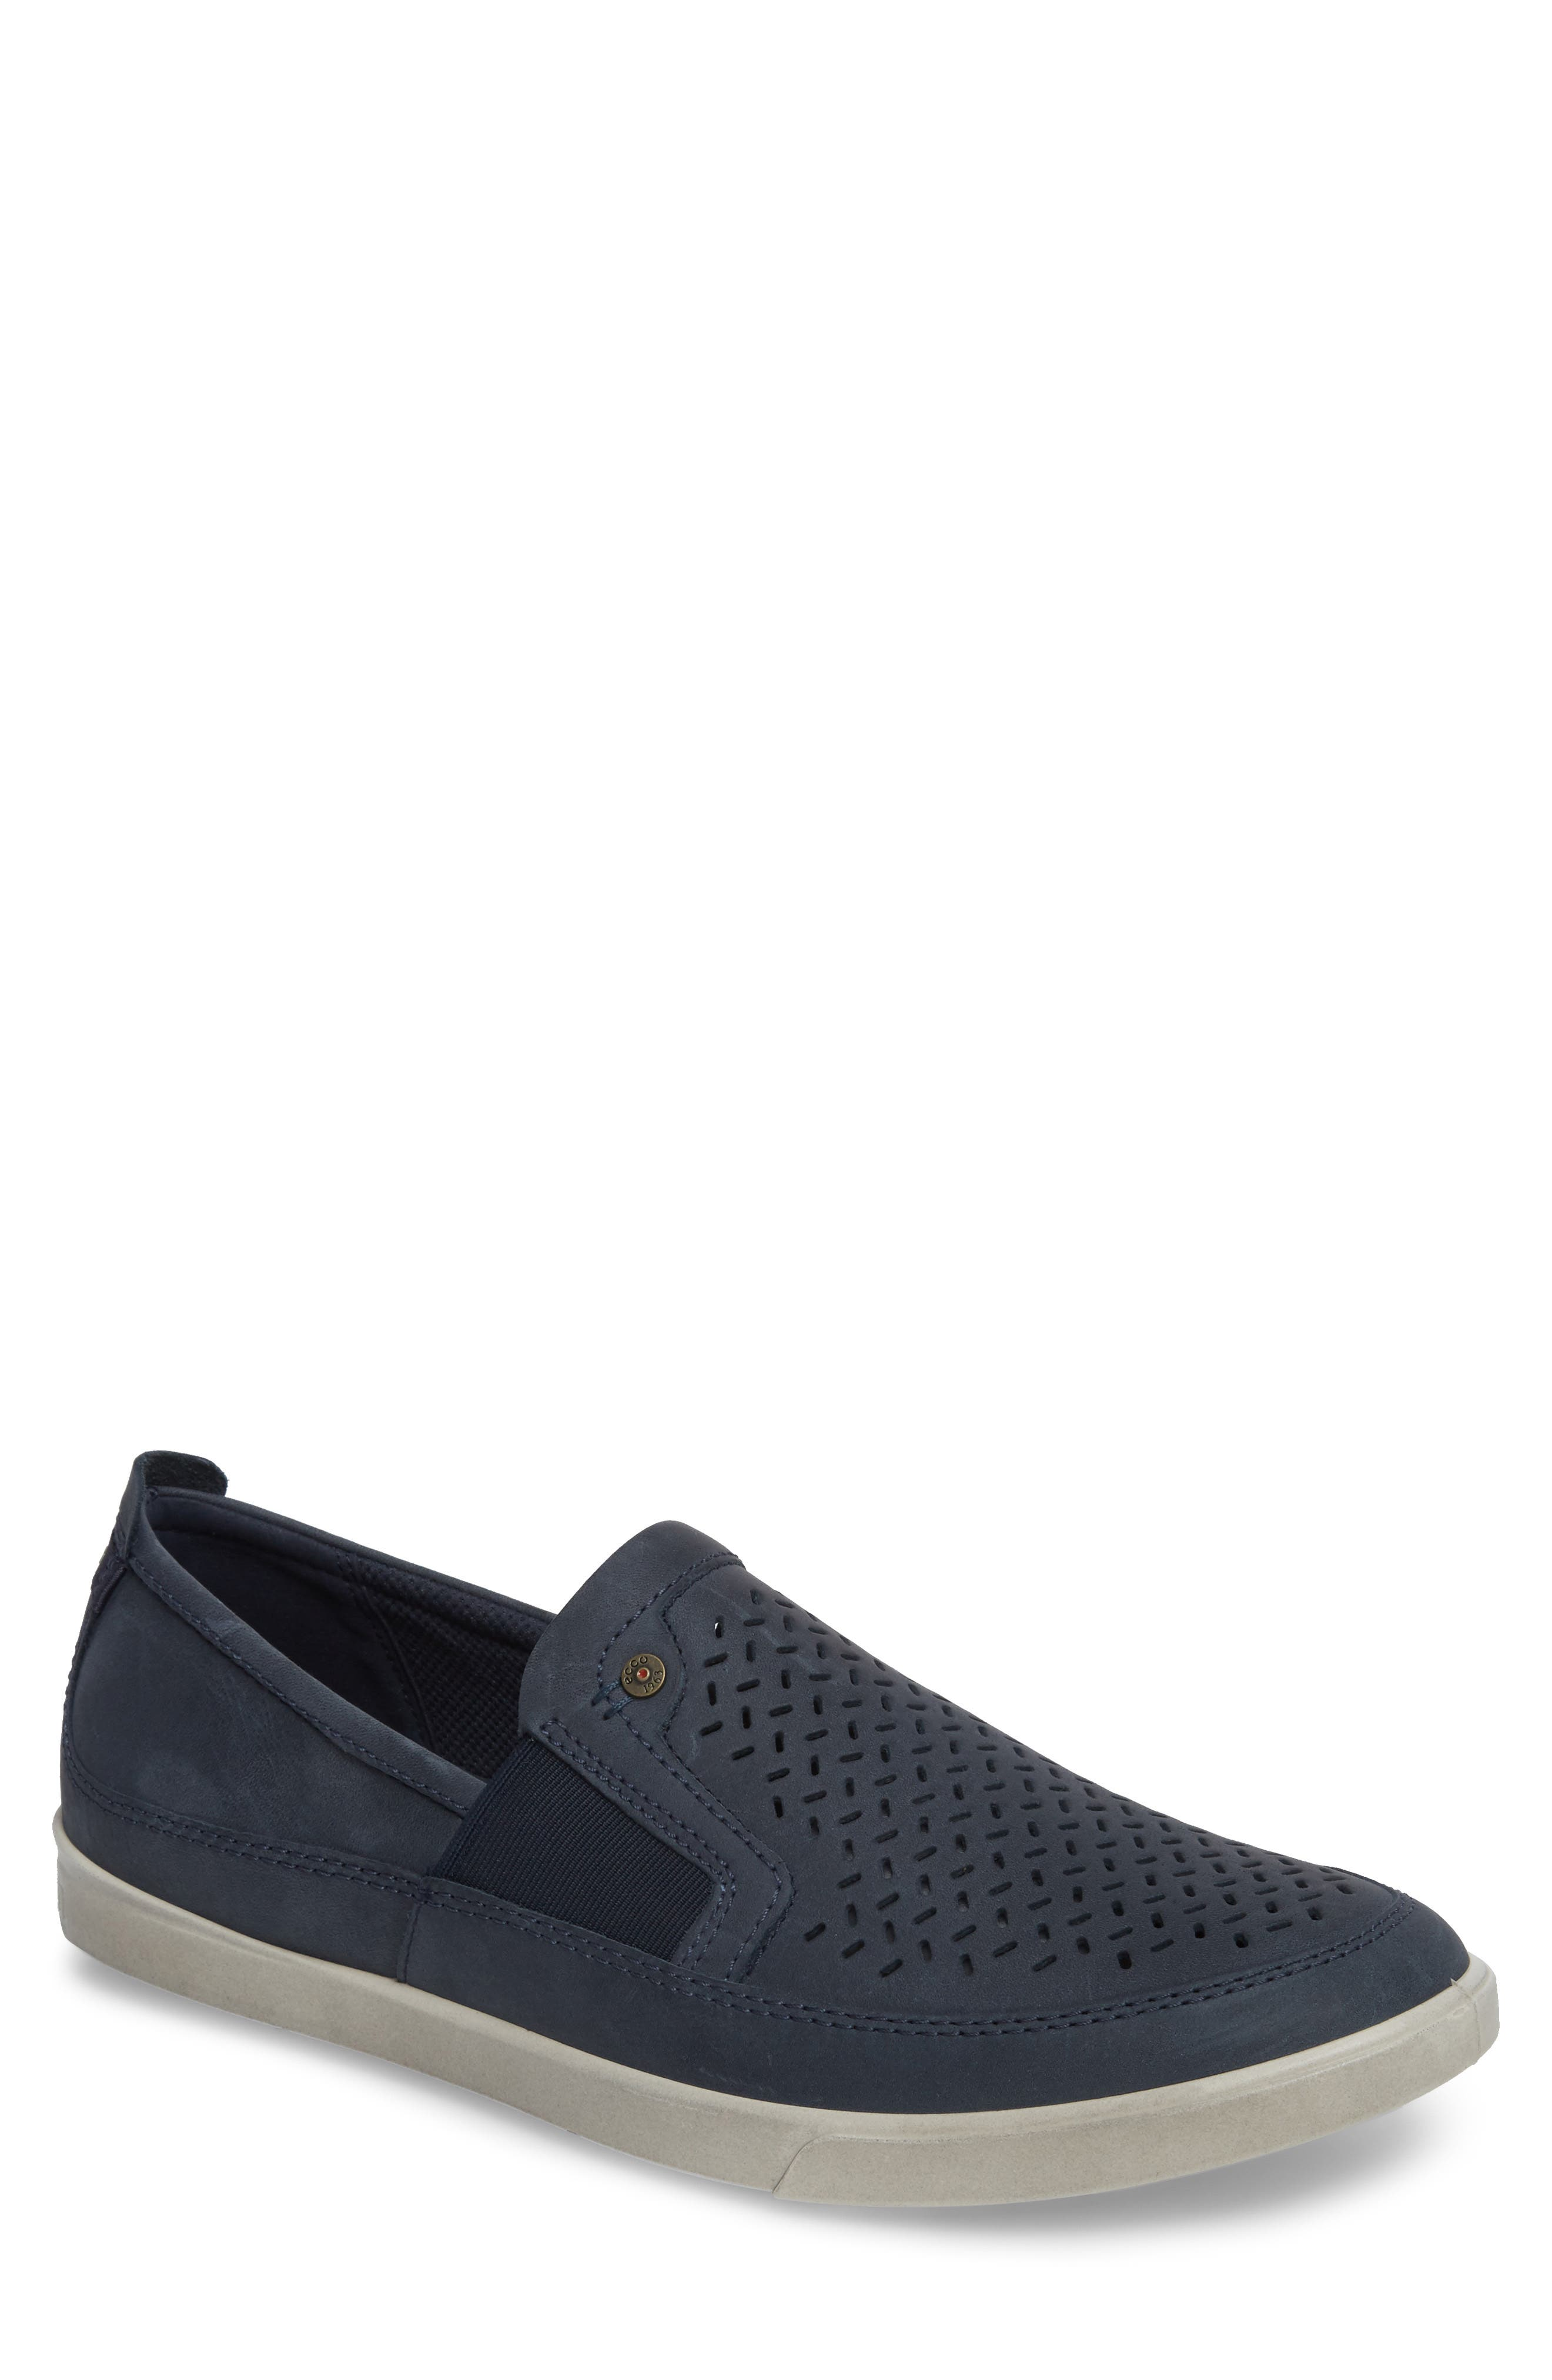 'Collin' Perforated Slip On Sneaker,                         Main,                         color, MARINE LEATHER